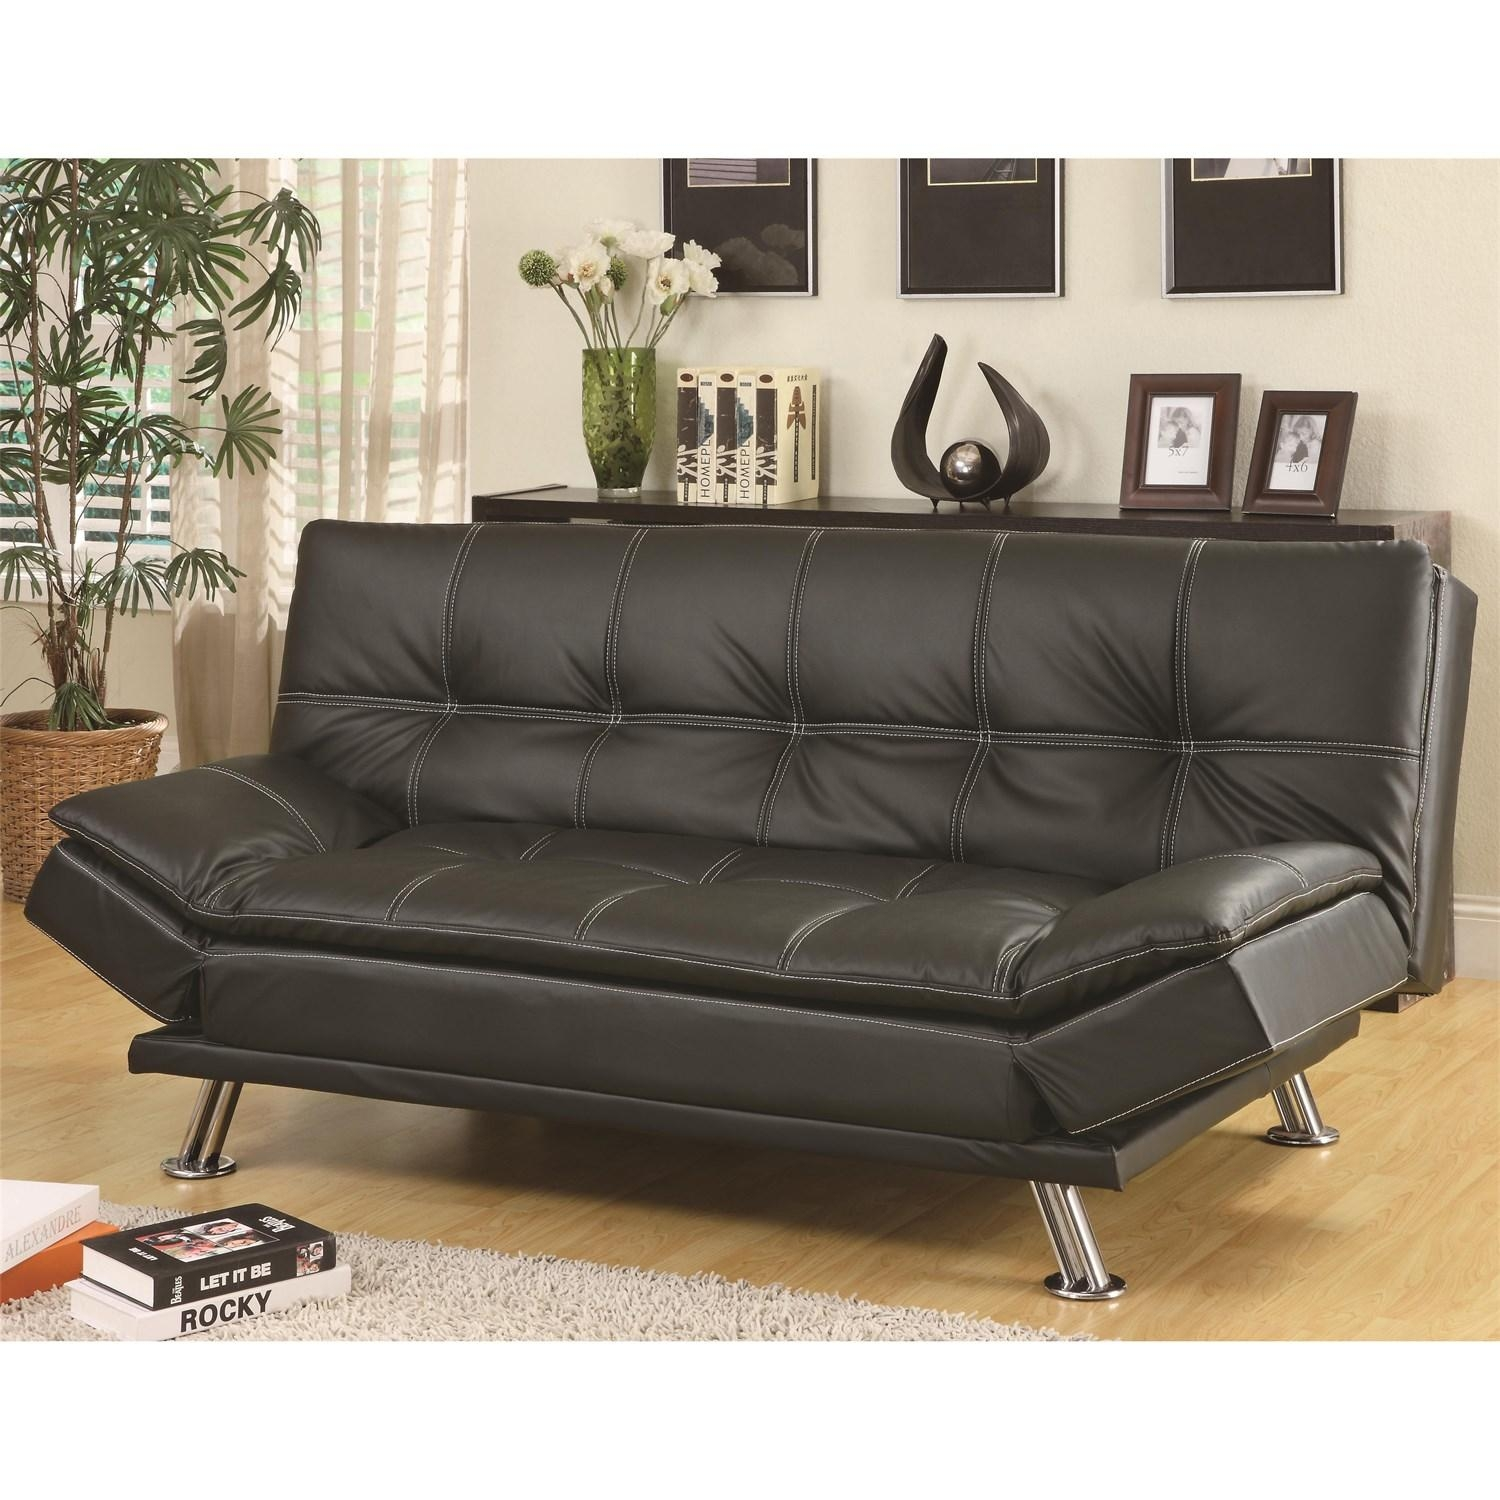 Sofas Center Mainstays Black Faux Leather Sleeper Sofa Modern – Ftfpgh Regarding Faux Leather Sleeper Sofas (View 10 of 20)